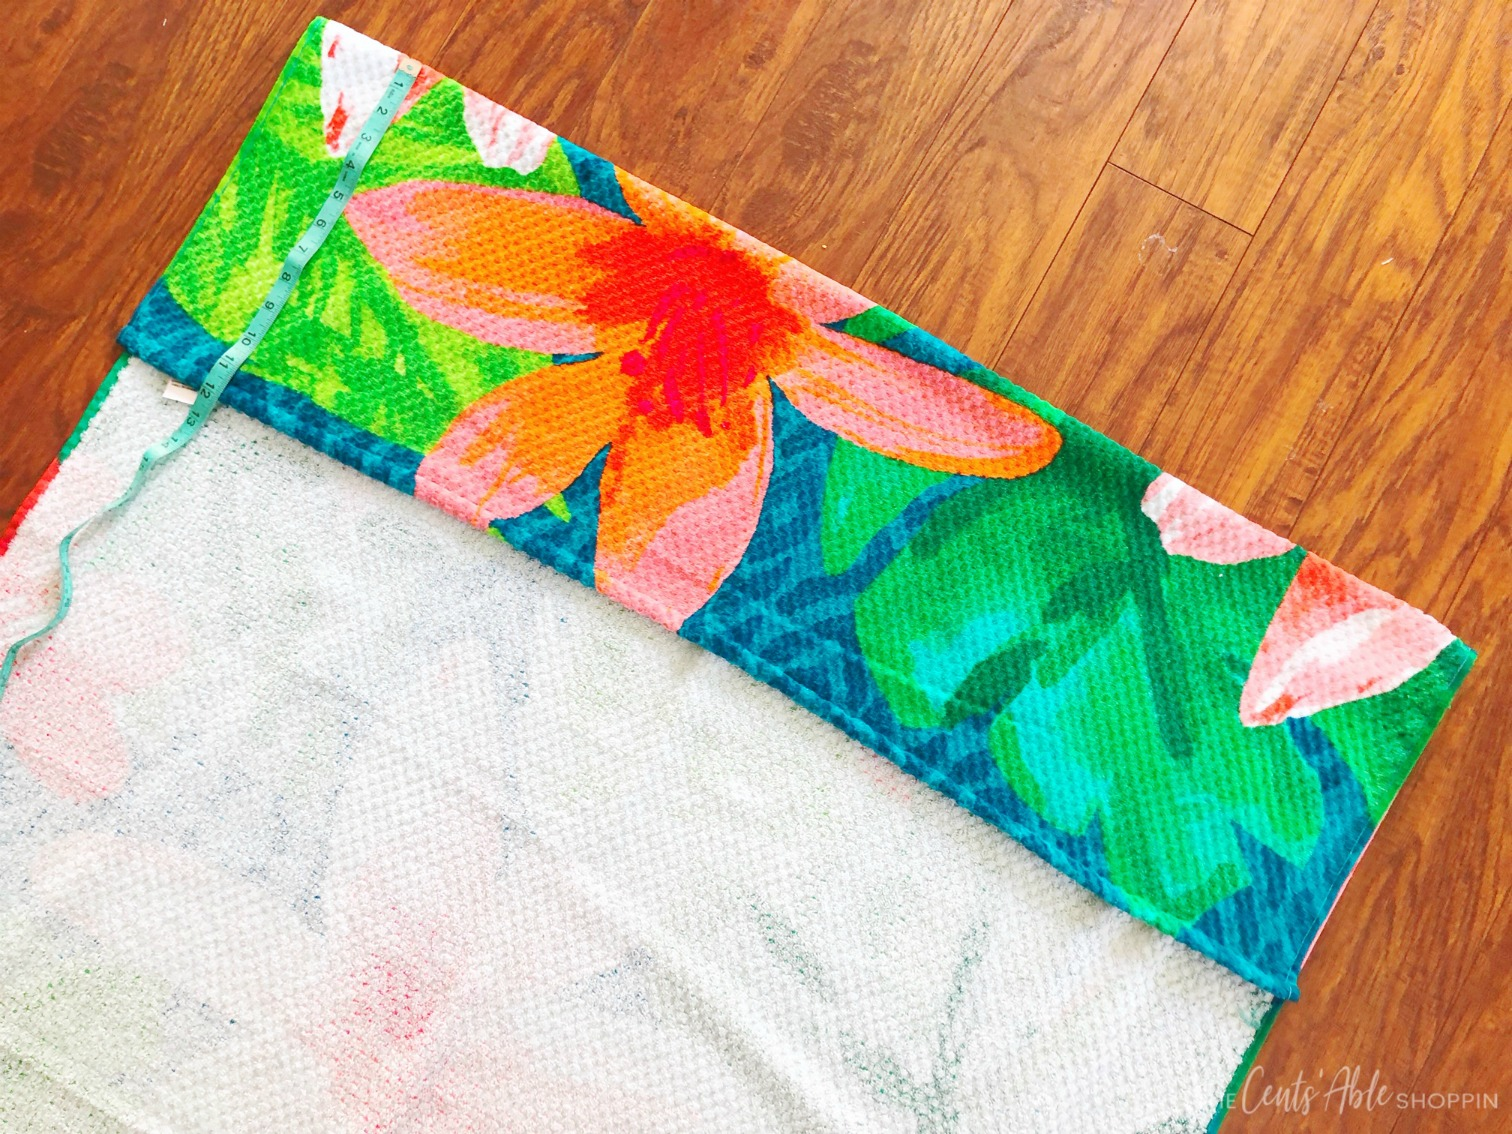 Beach Towel Materials \\ This simple beach towel DIY takes just minutes and will prevent your towel from slipping off your chair when relaxing around the pool or beach this summer!